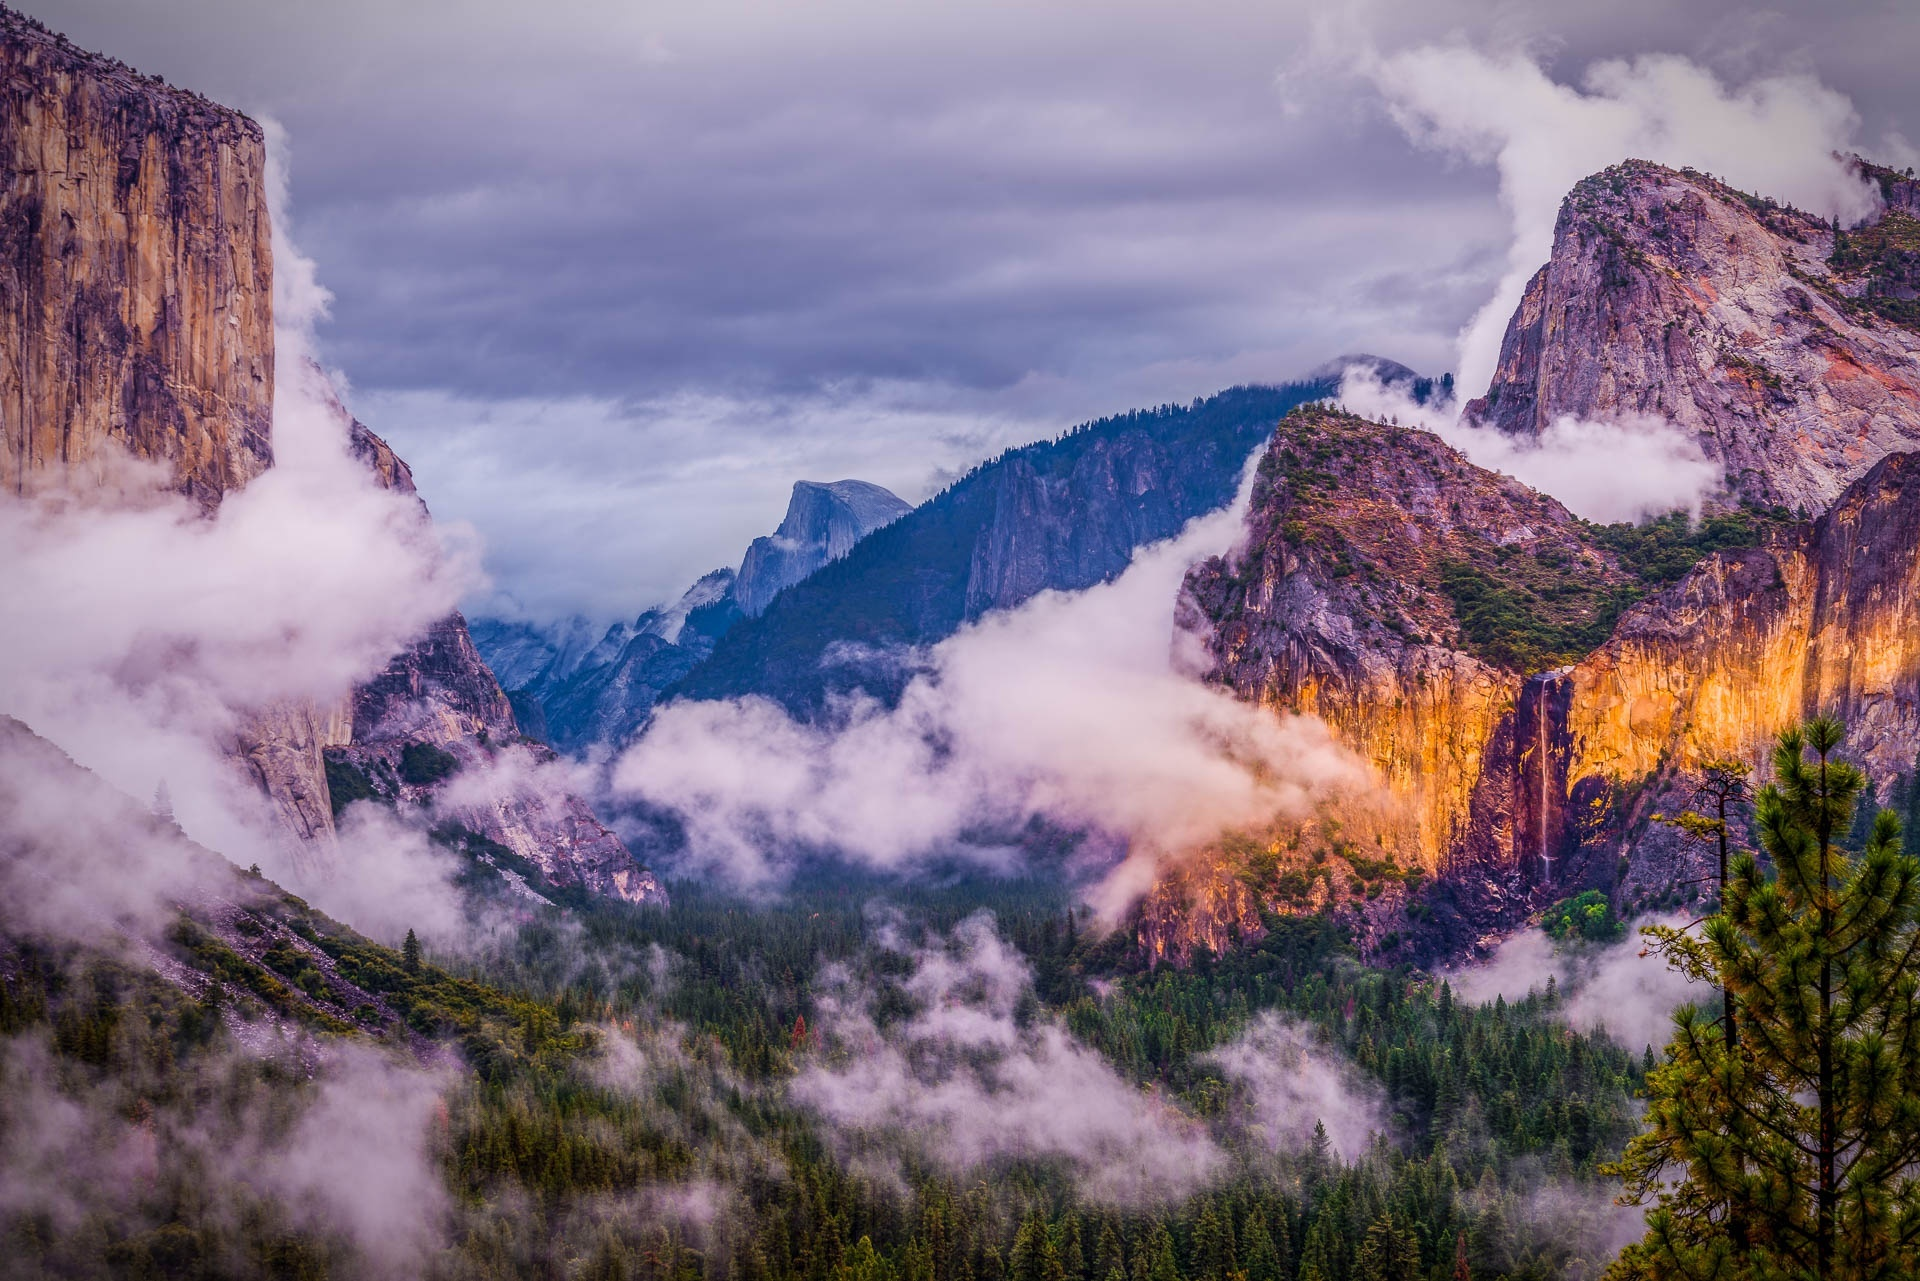 1366x768 Yosemite National Park Clouds 1366x768 Resolution ...